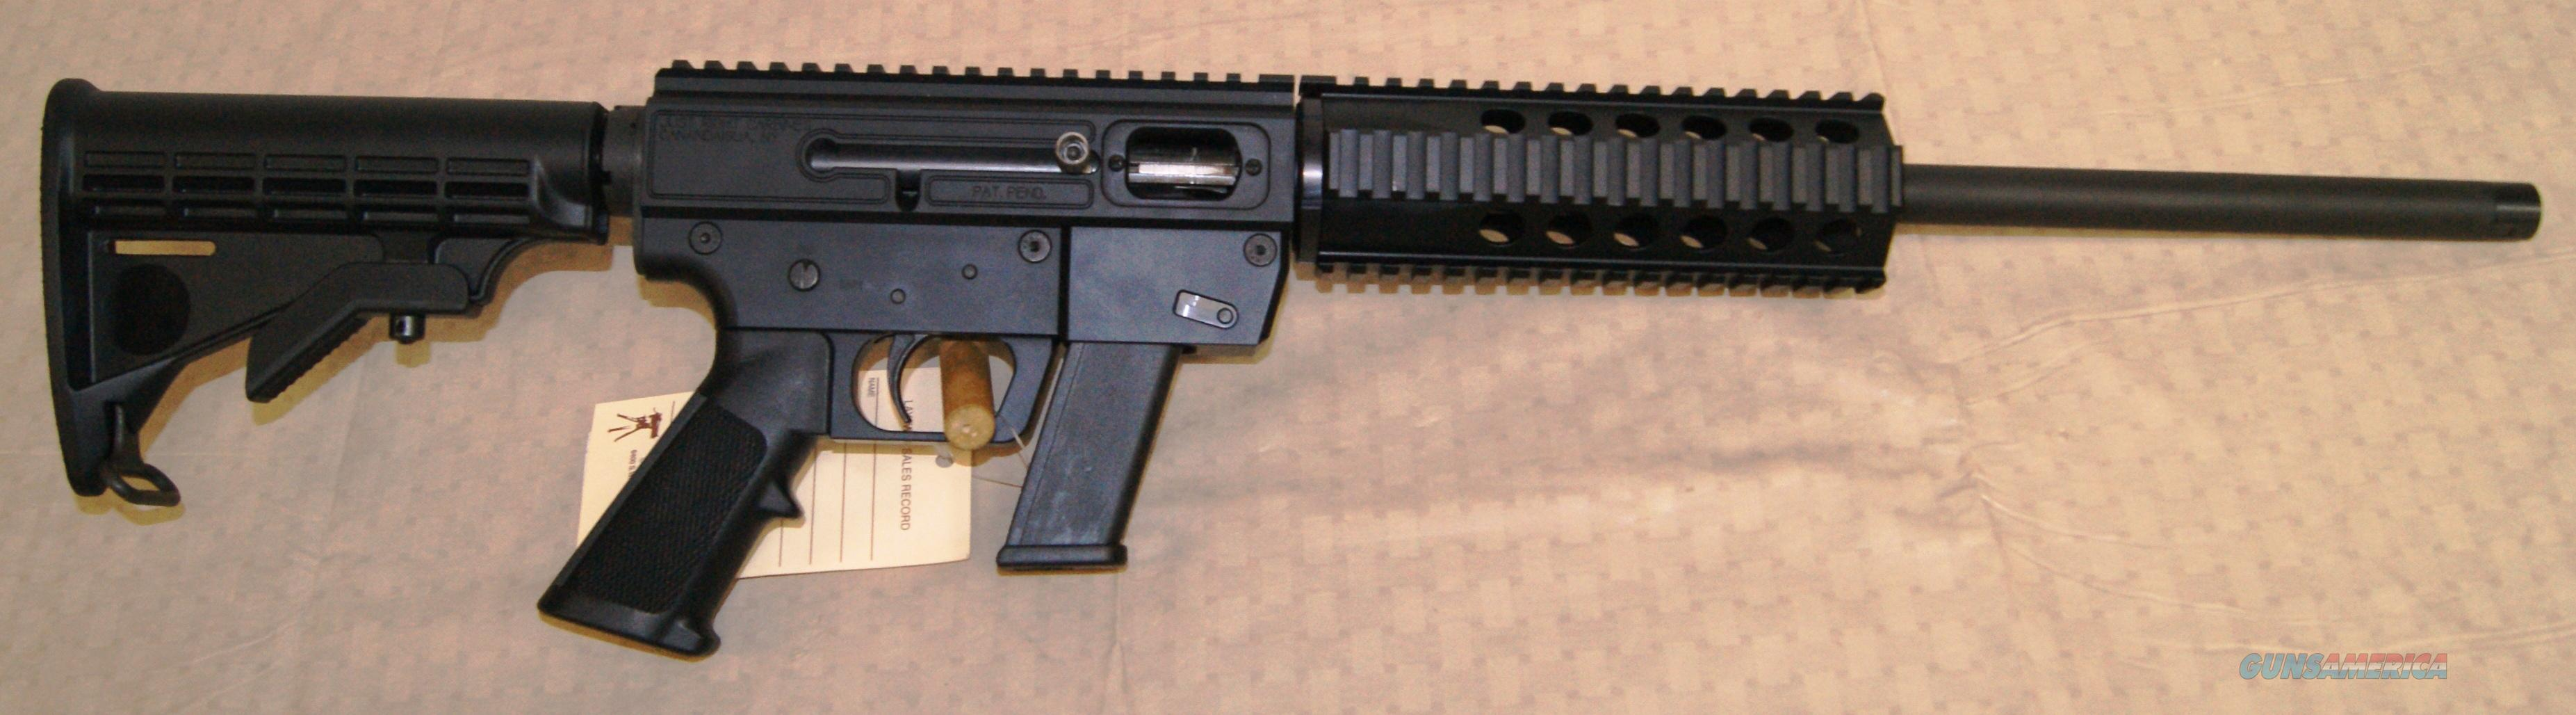 Just Right Carbine G-9mm AR15 Utilizes Glock Mags  Guns > Rifles > IJ Misc Rifles